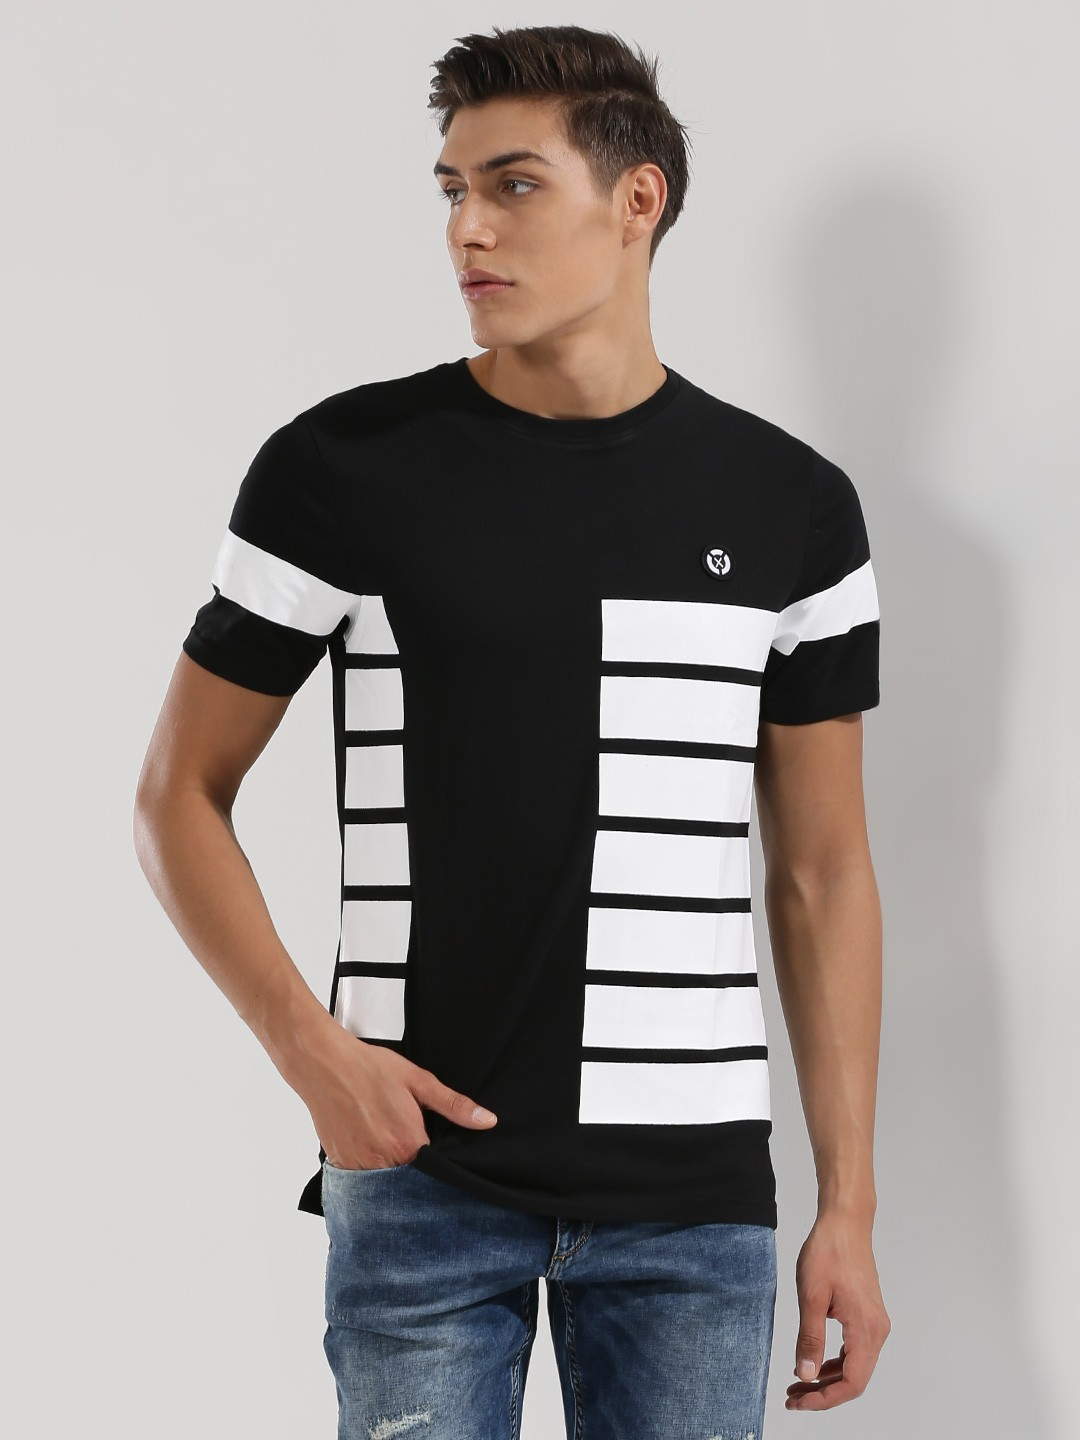 Black t shirt with white stripes - X O Y O T Shirt With Contrast Side Panel Stripes